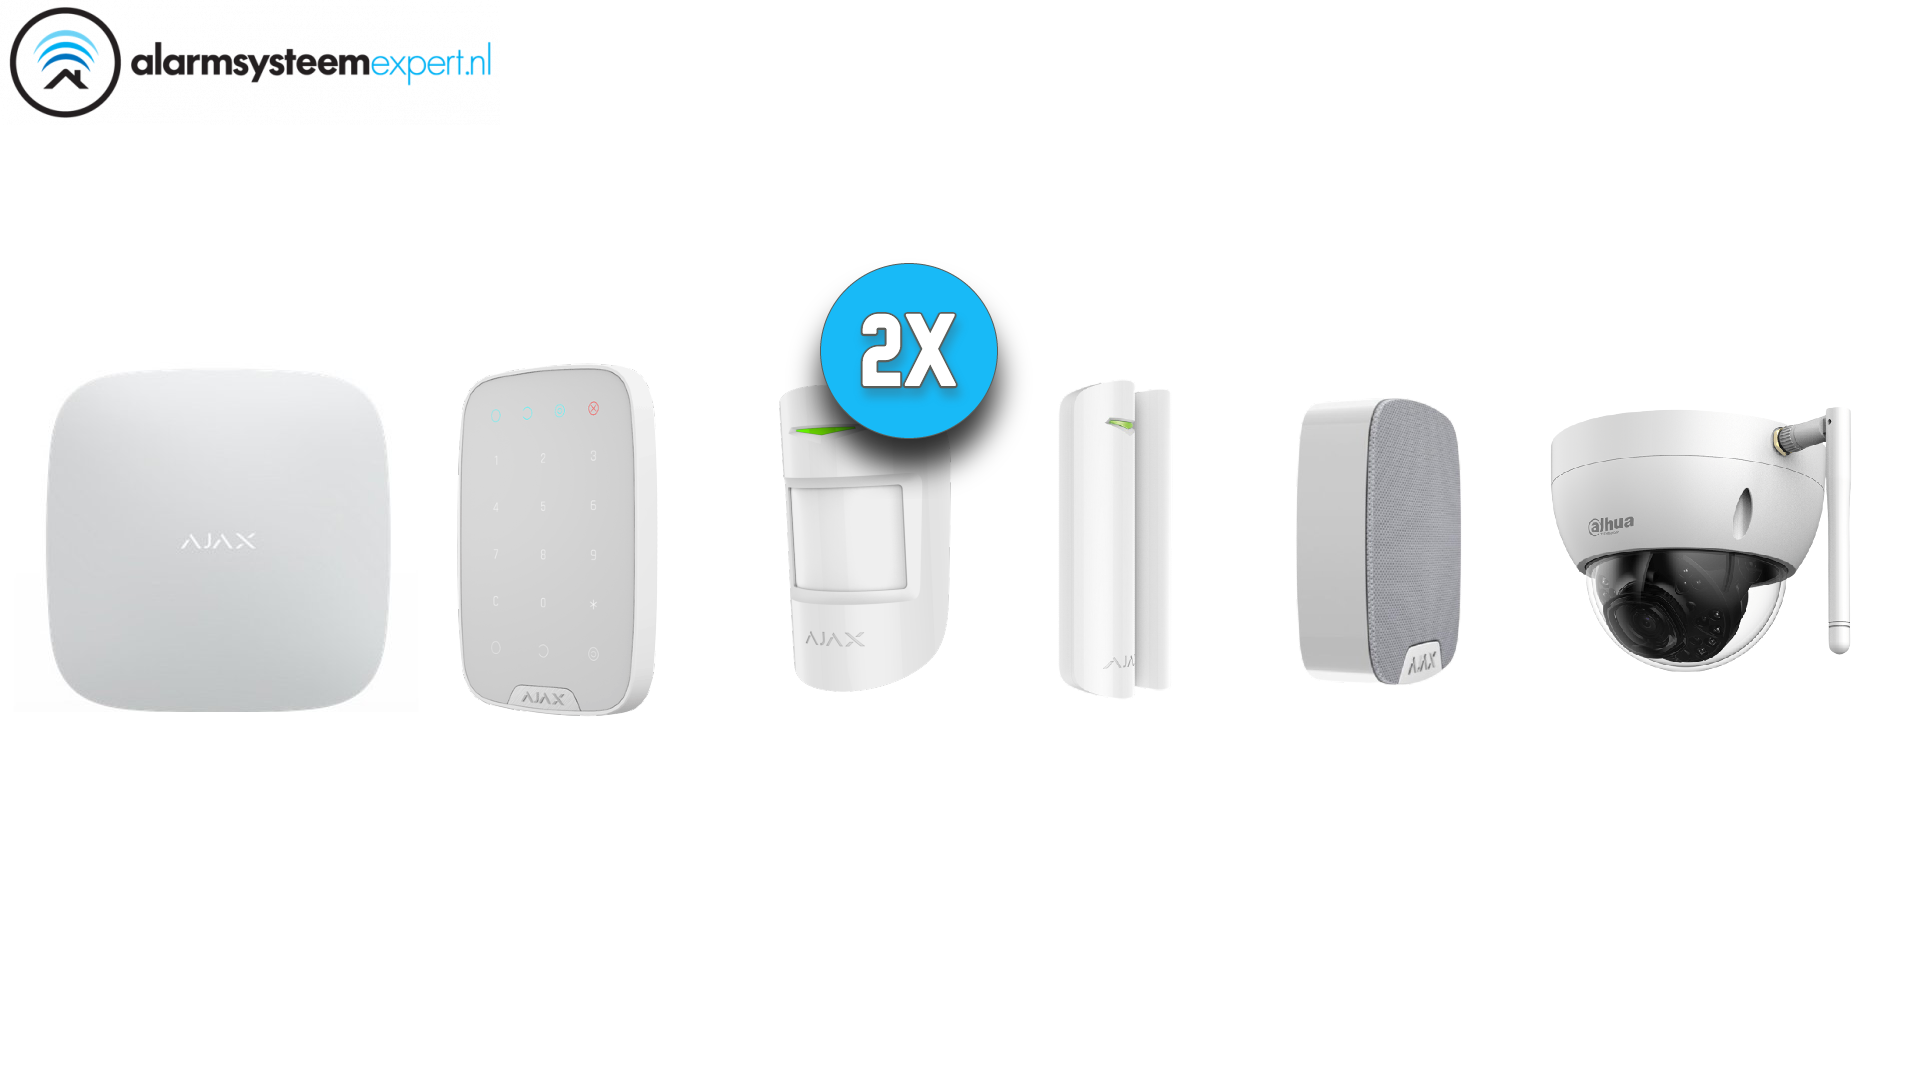 Ajax alarm system kit can be used as the basis for the wireless Ajax security system.